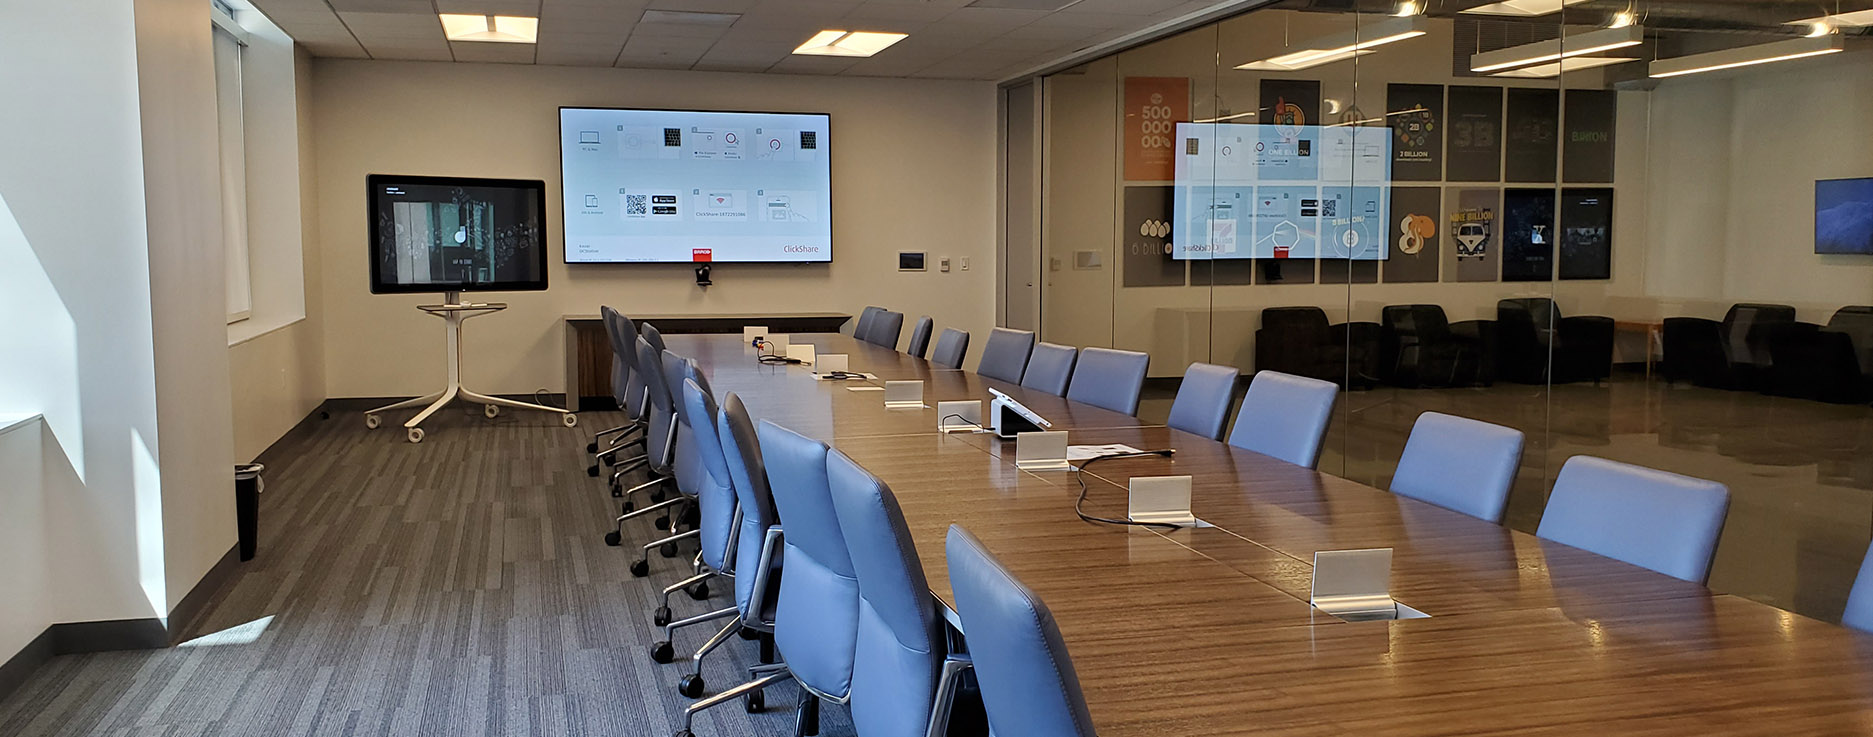 Oakland Video Conferencing, Video Conferencing Solutions and Audio Visual Communications